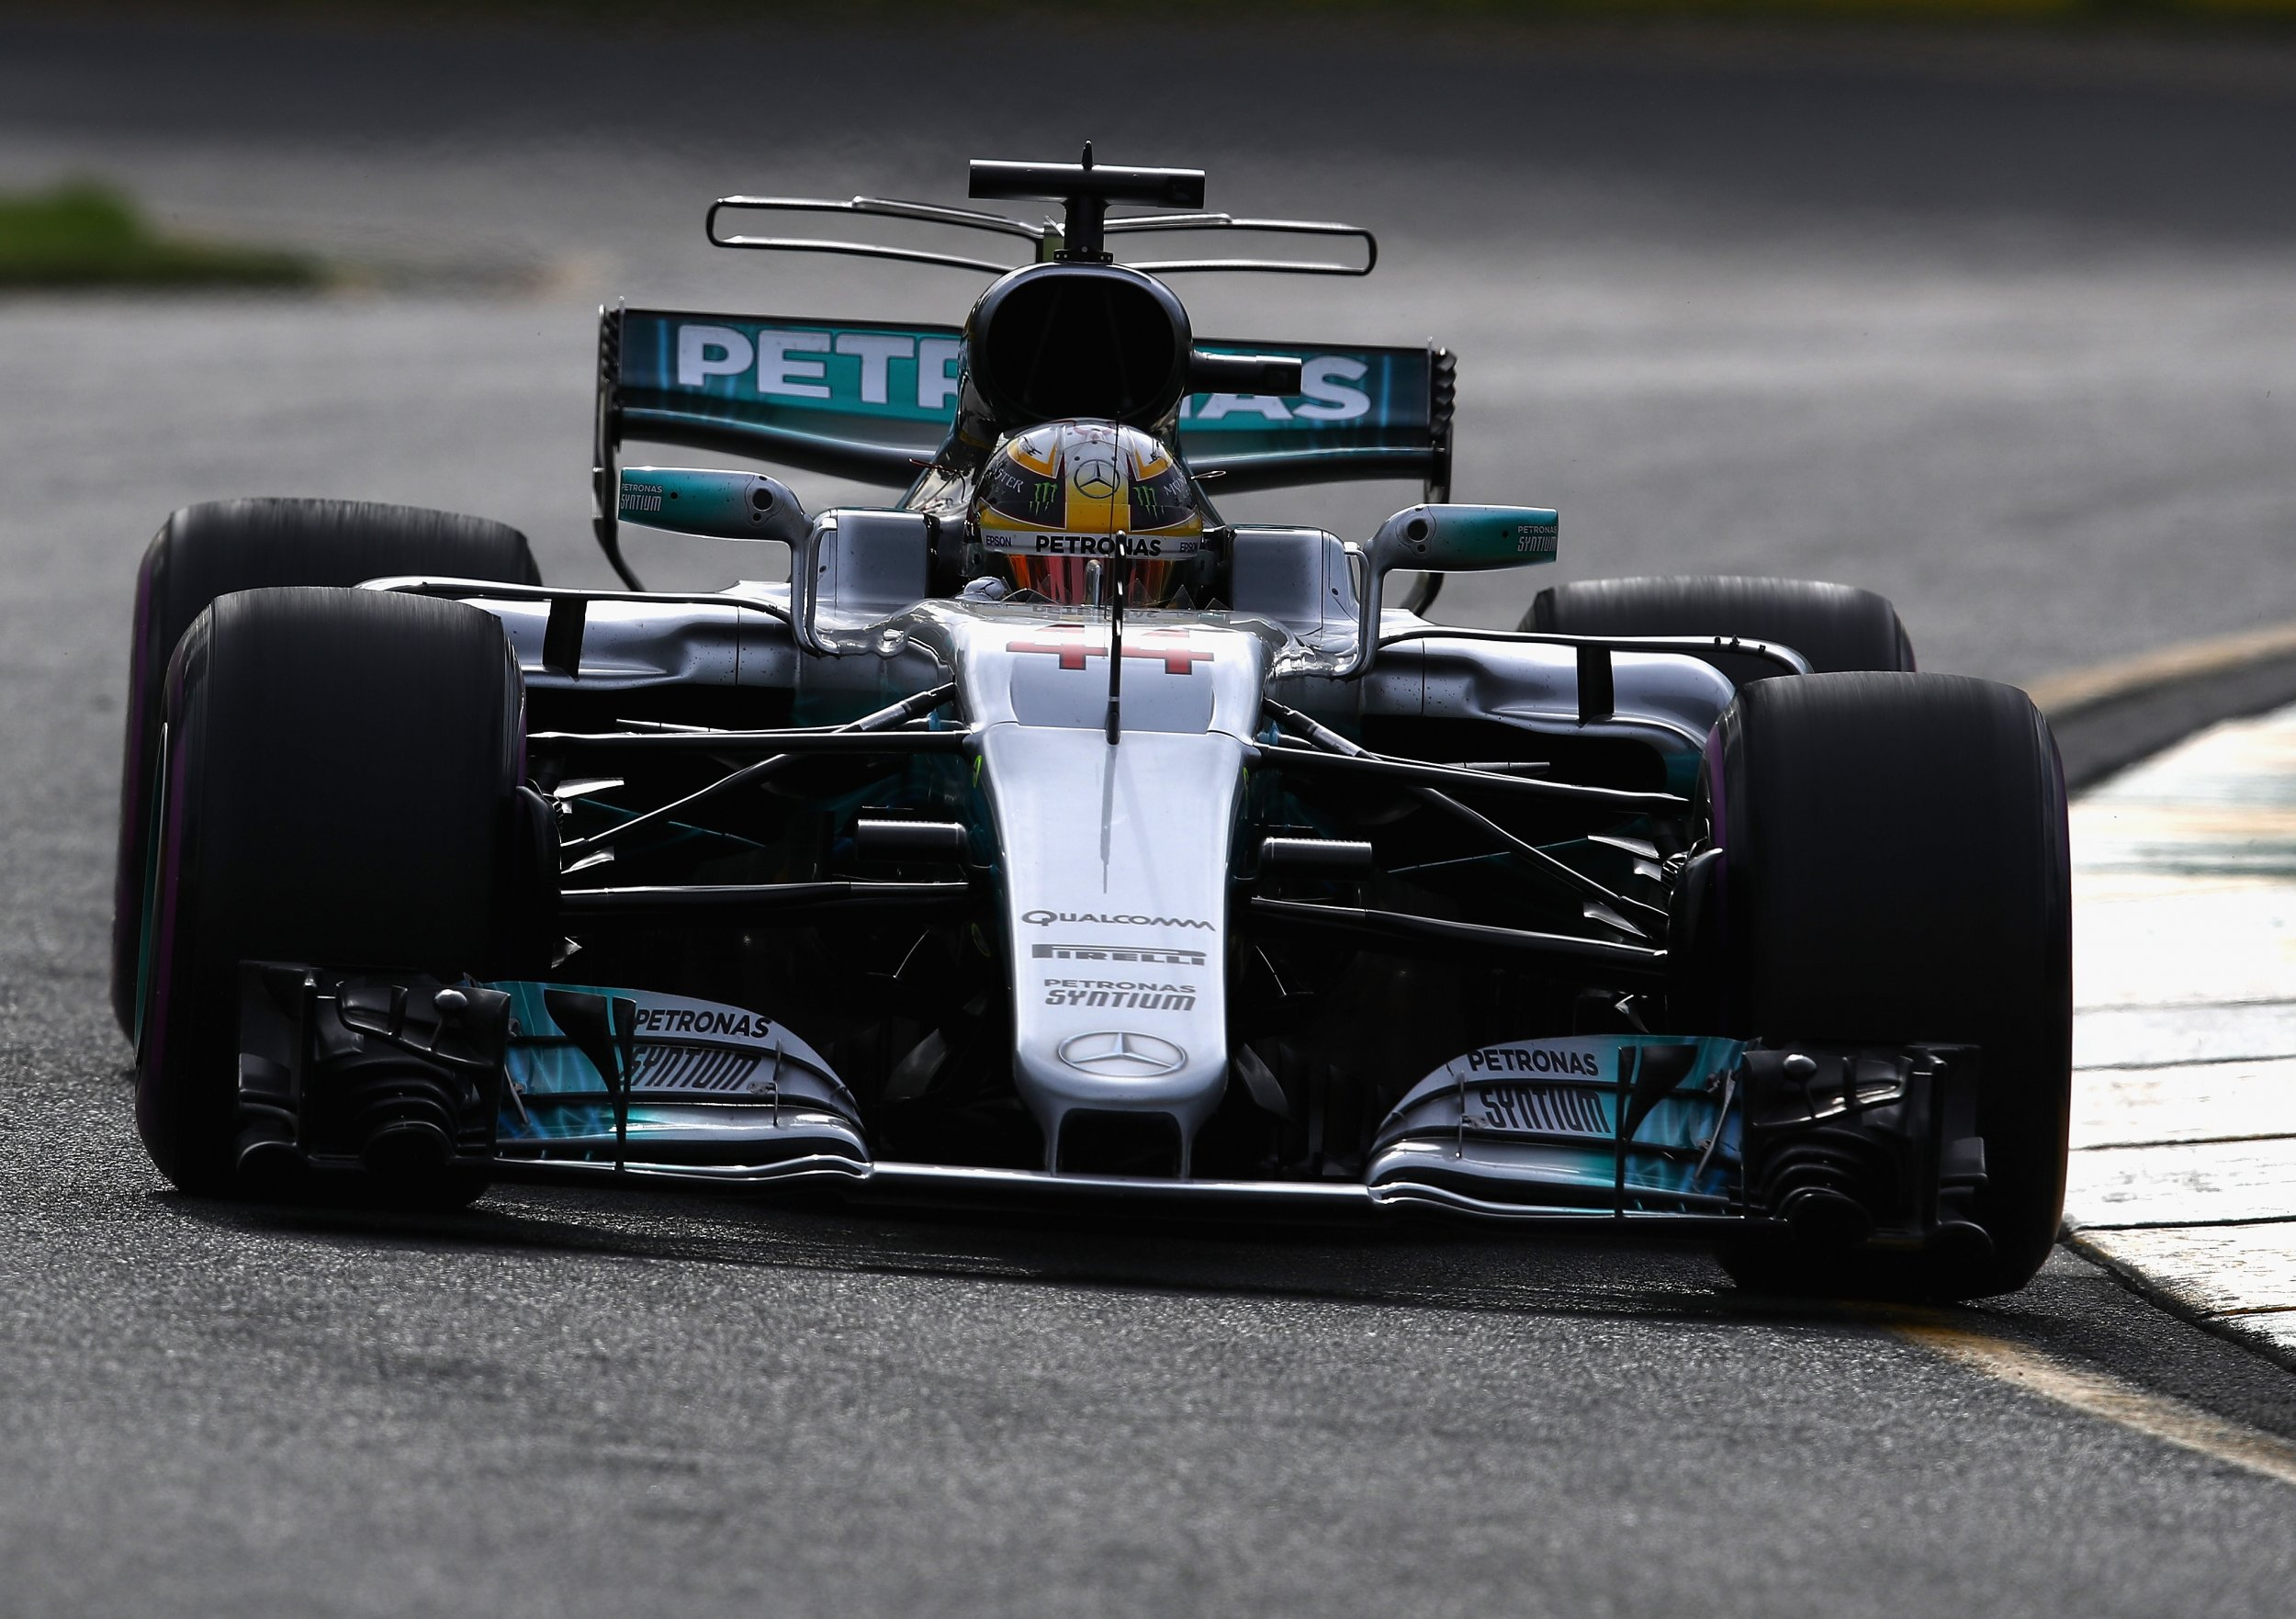 australian grand prix 2017 conclusions from opening day of practice as lewis hamilton dominates. Black Bedroom Furniture Sets. Home Design Ideas